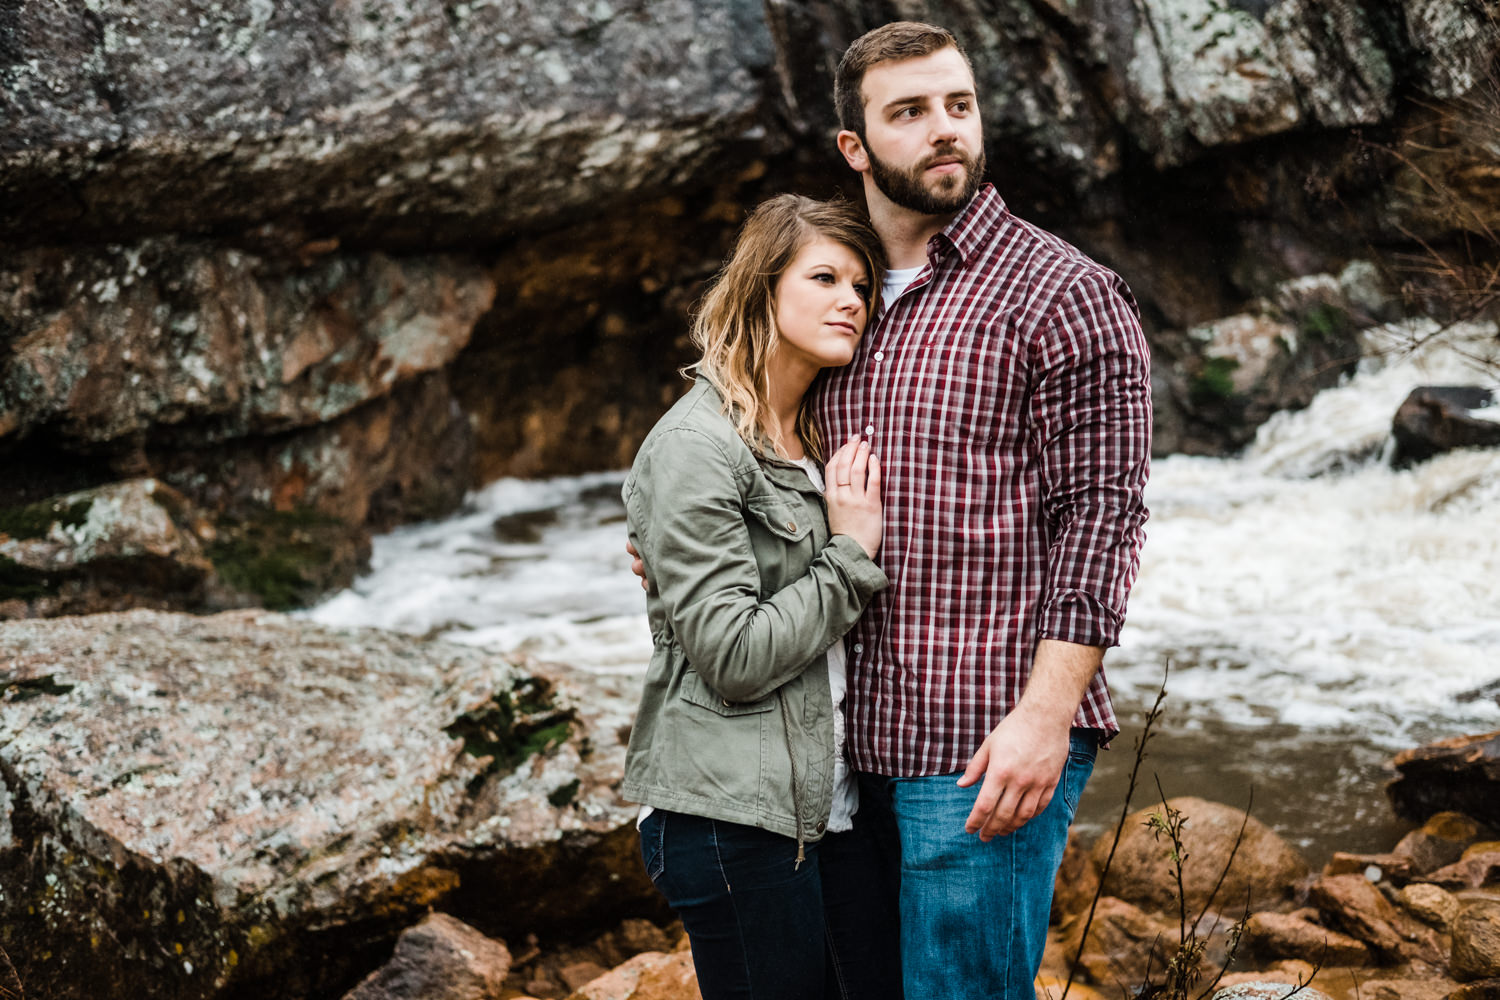 Oklahoma Engagement-Neal Dieker-Oklahoma Wedding Photography-Wichita Mountains-Wichita, Kansas Portrait Photographer-139.jpg